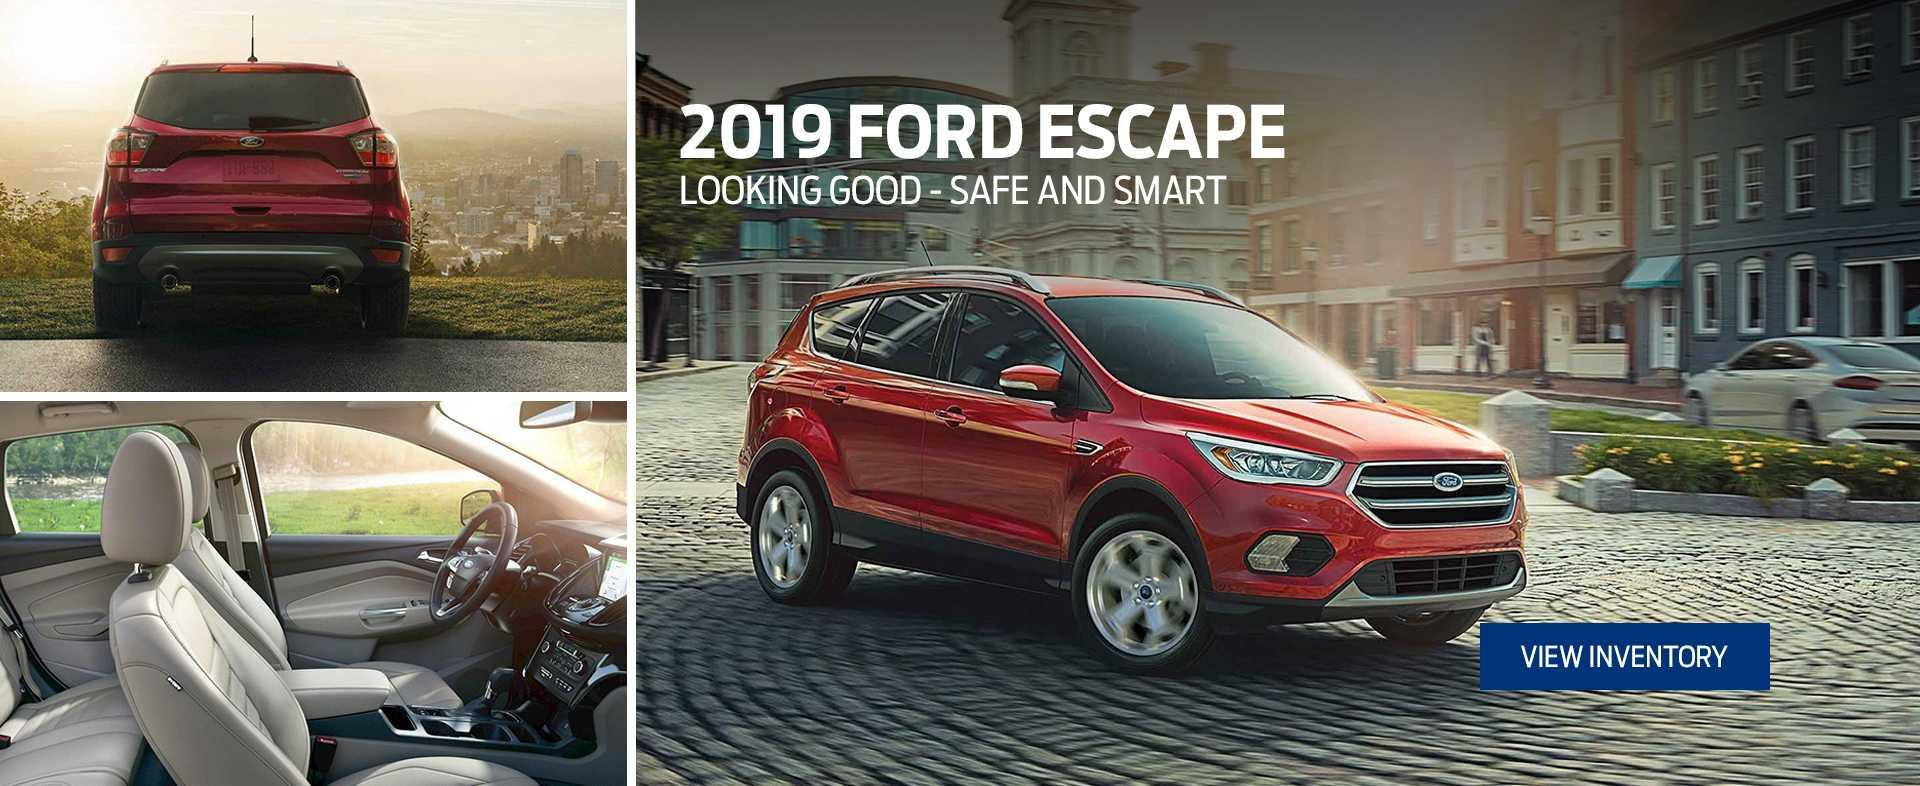 Ford Home 2019 Escape image